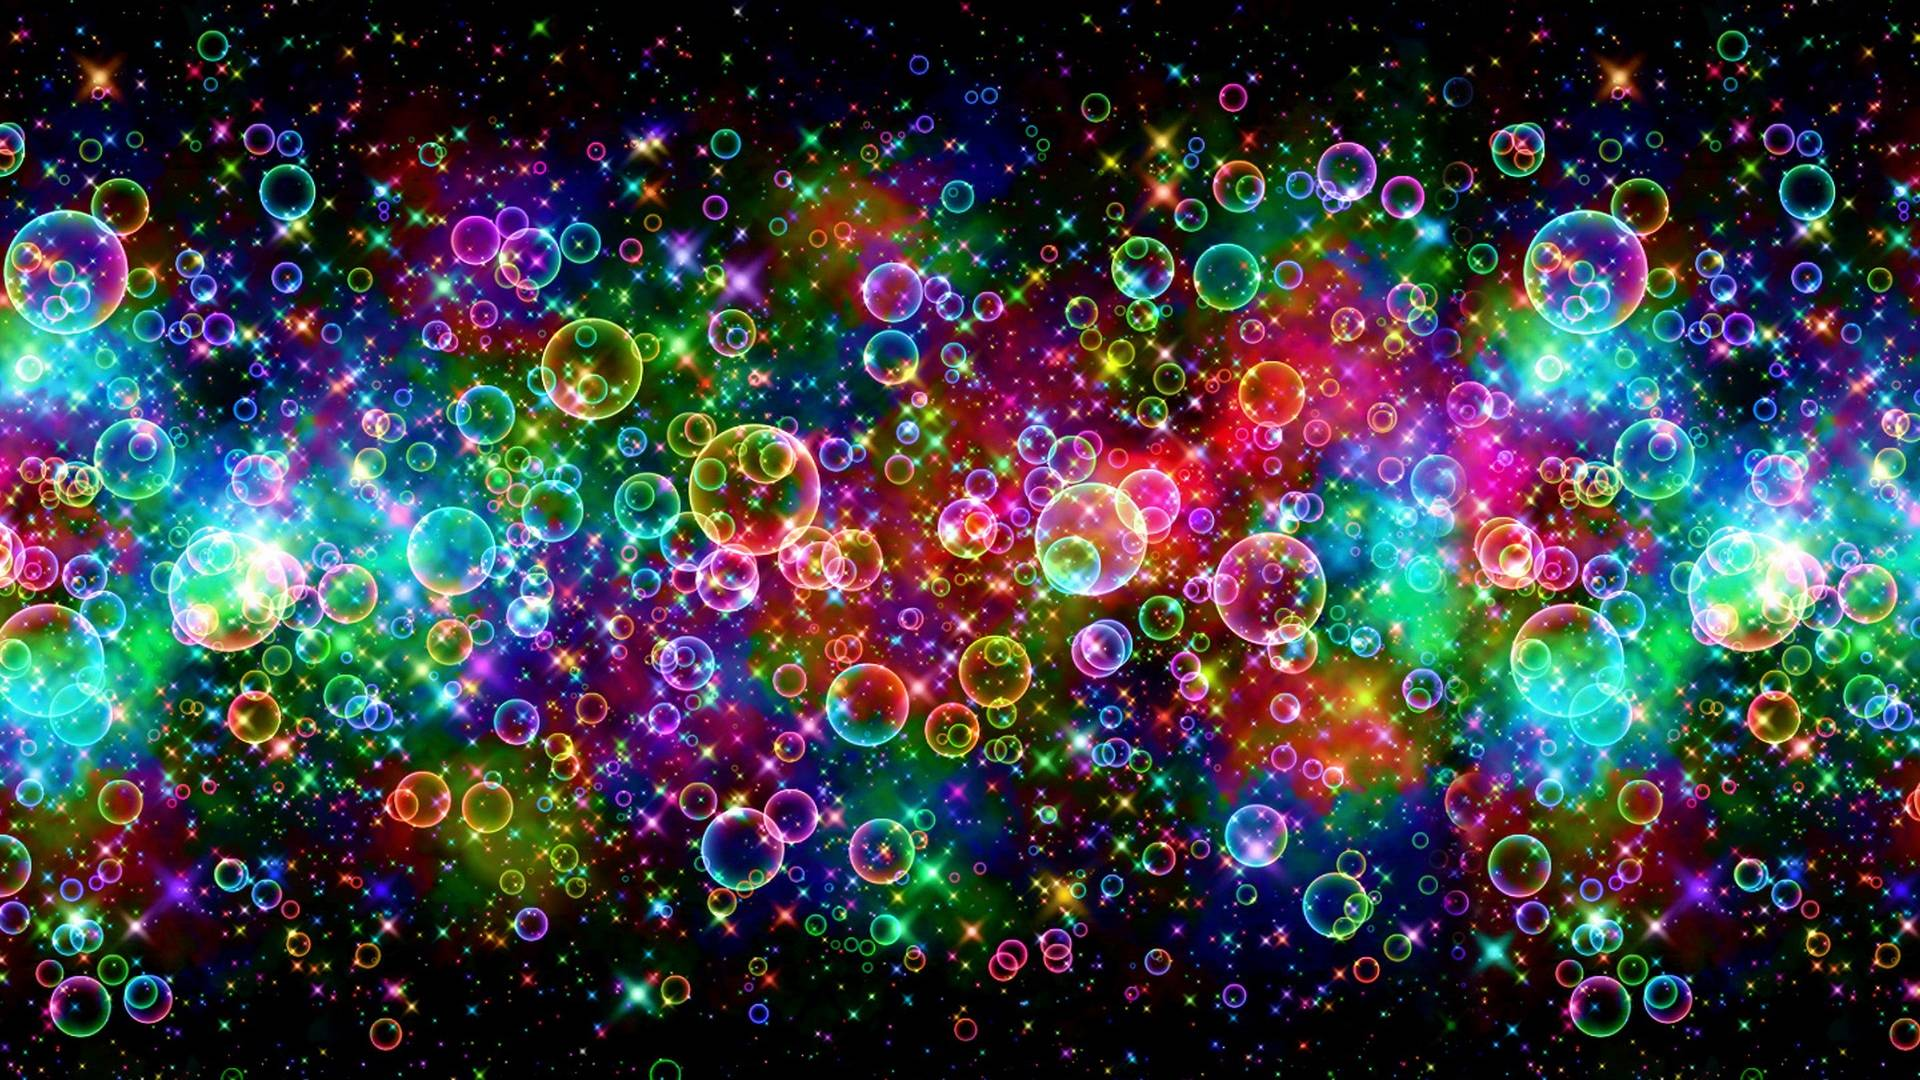 Colorful HD Backgrounds 1920x1080